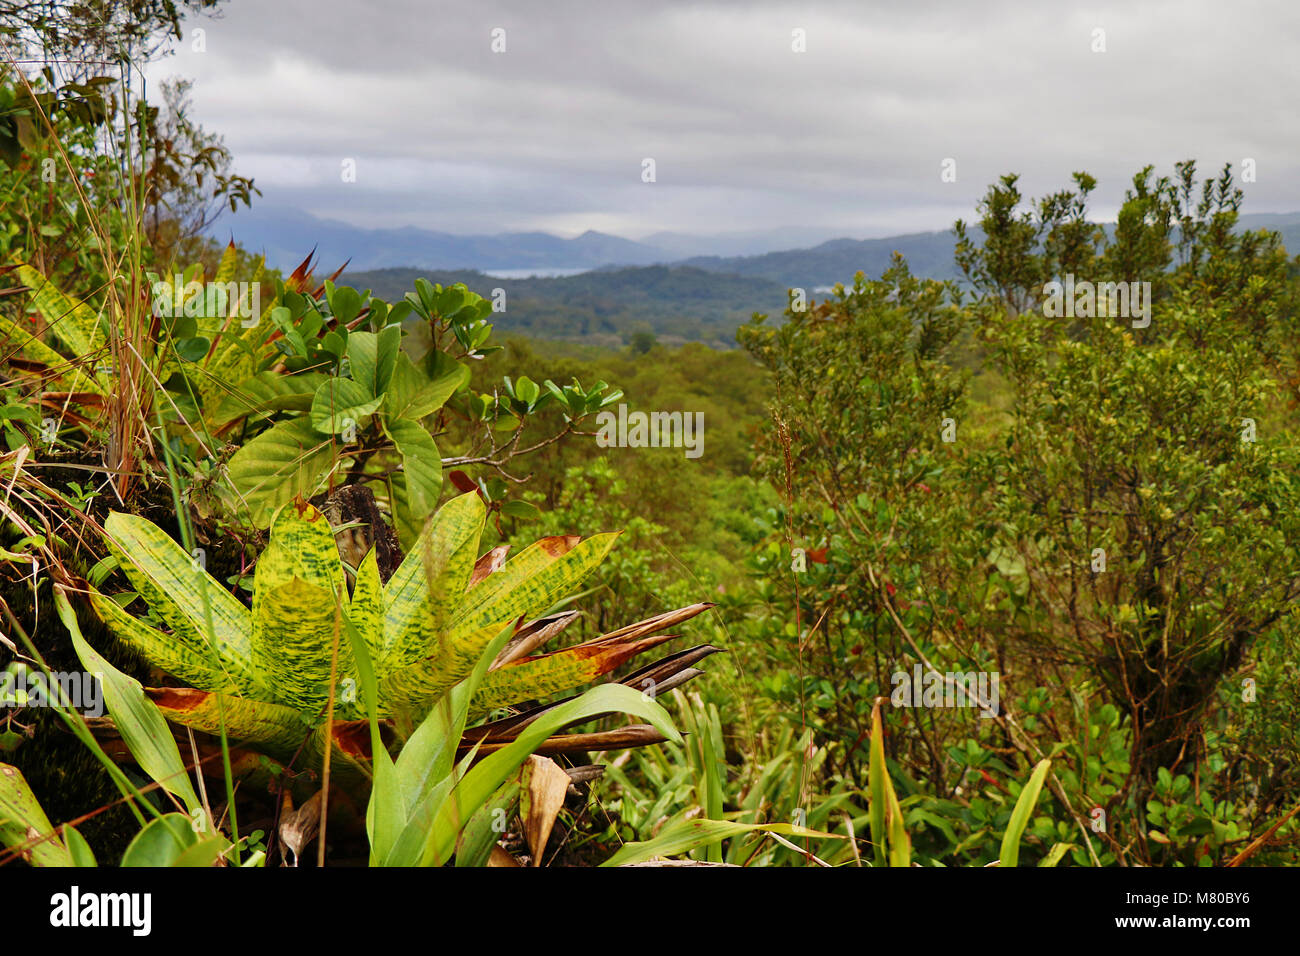 Volcanic landscape from the Arenal Volcano in Alajuela Province, Costa Rica - Stock Image